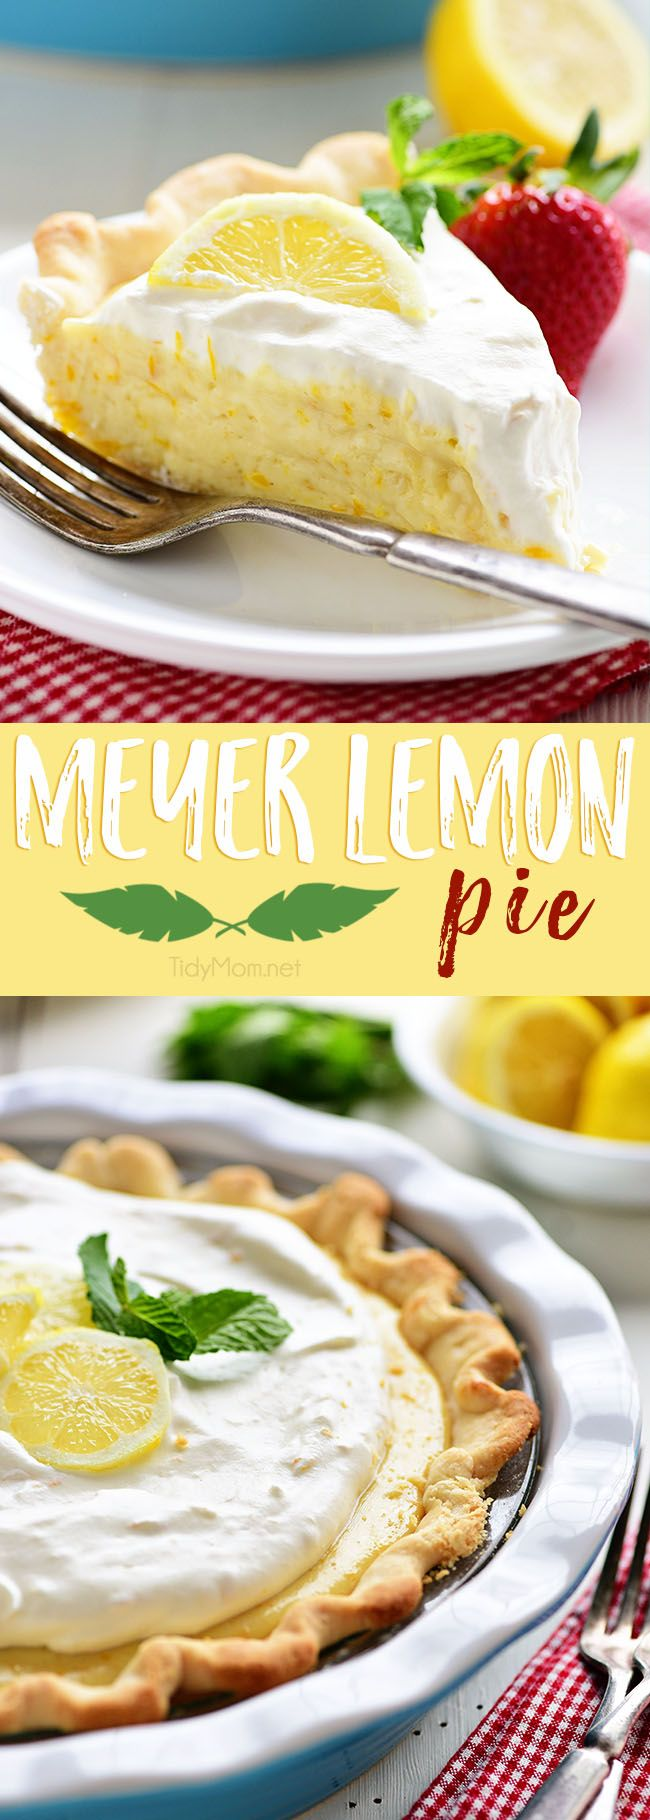 This Meyer Lemon Pie packs a ton of sweet lemon flavor with a fluffy texture. A simple homemade dessert perfect for spring. The pie is not overly sweet and has plenty of citrus love all the way through to the homemade whipped cream on top! Get the full printable recipe at TidyMom.net